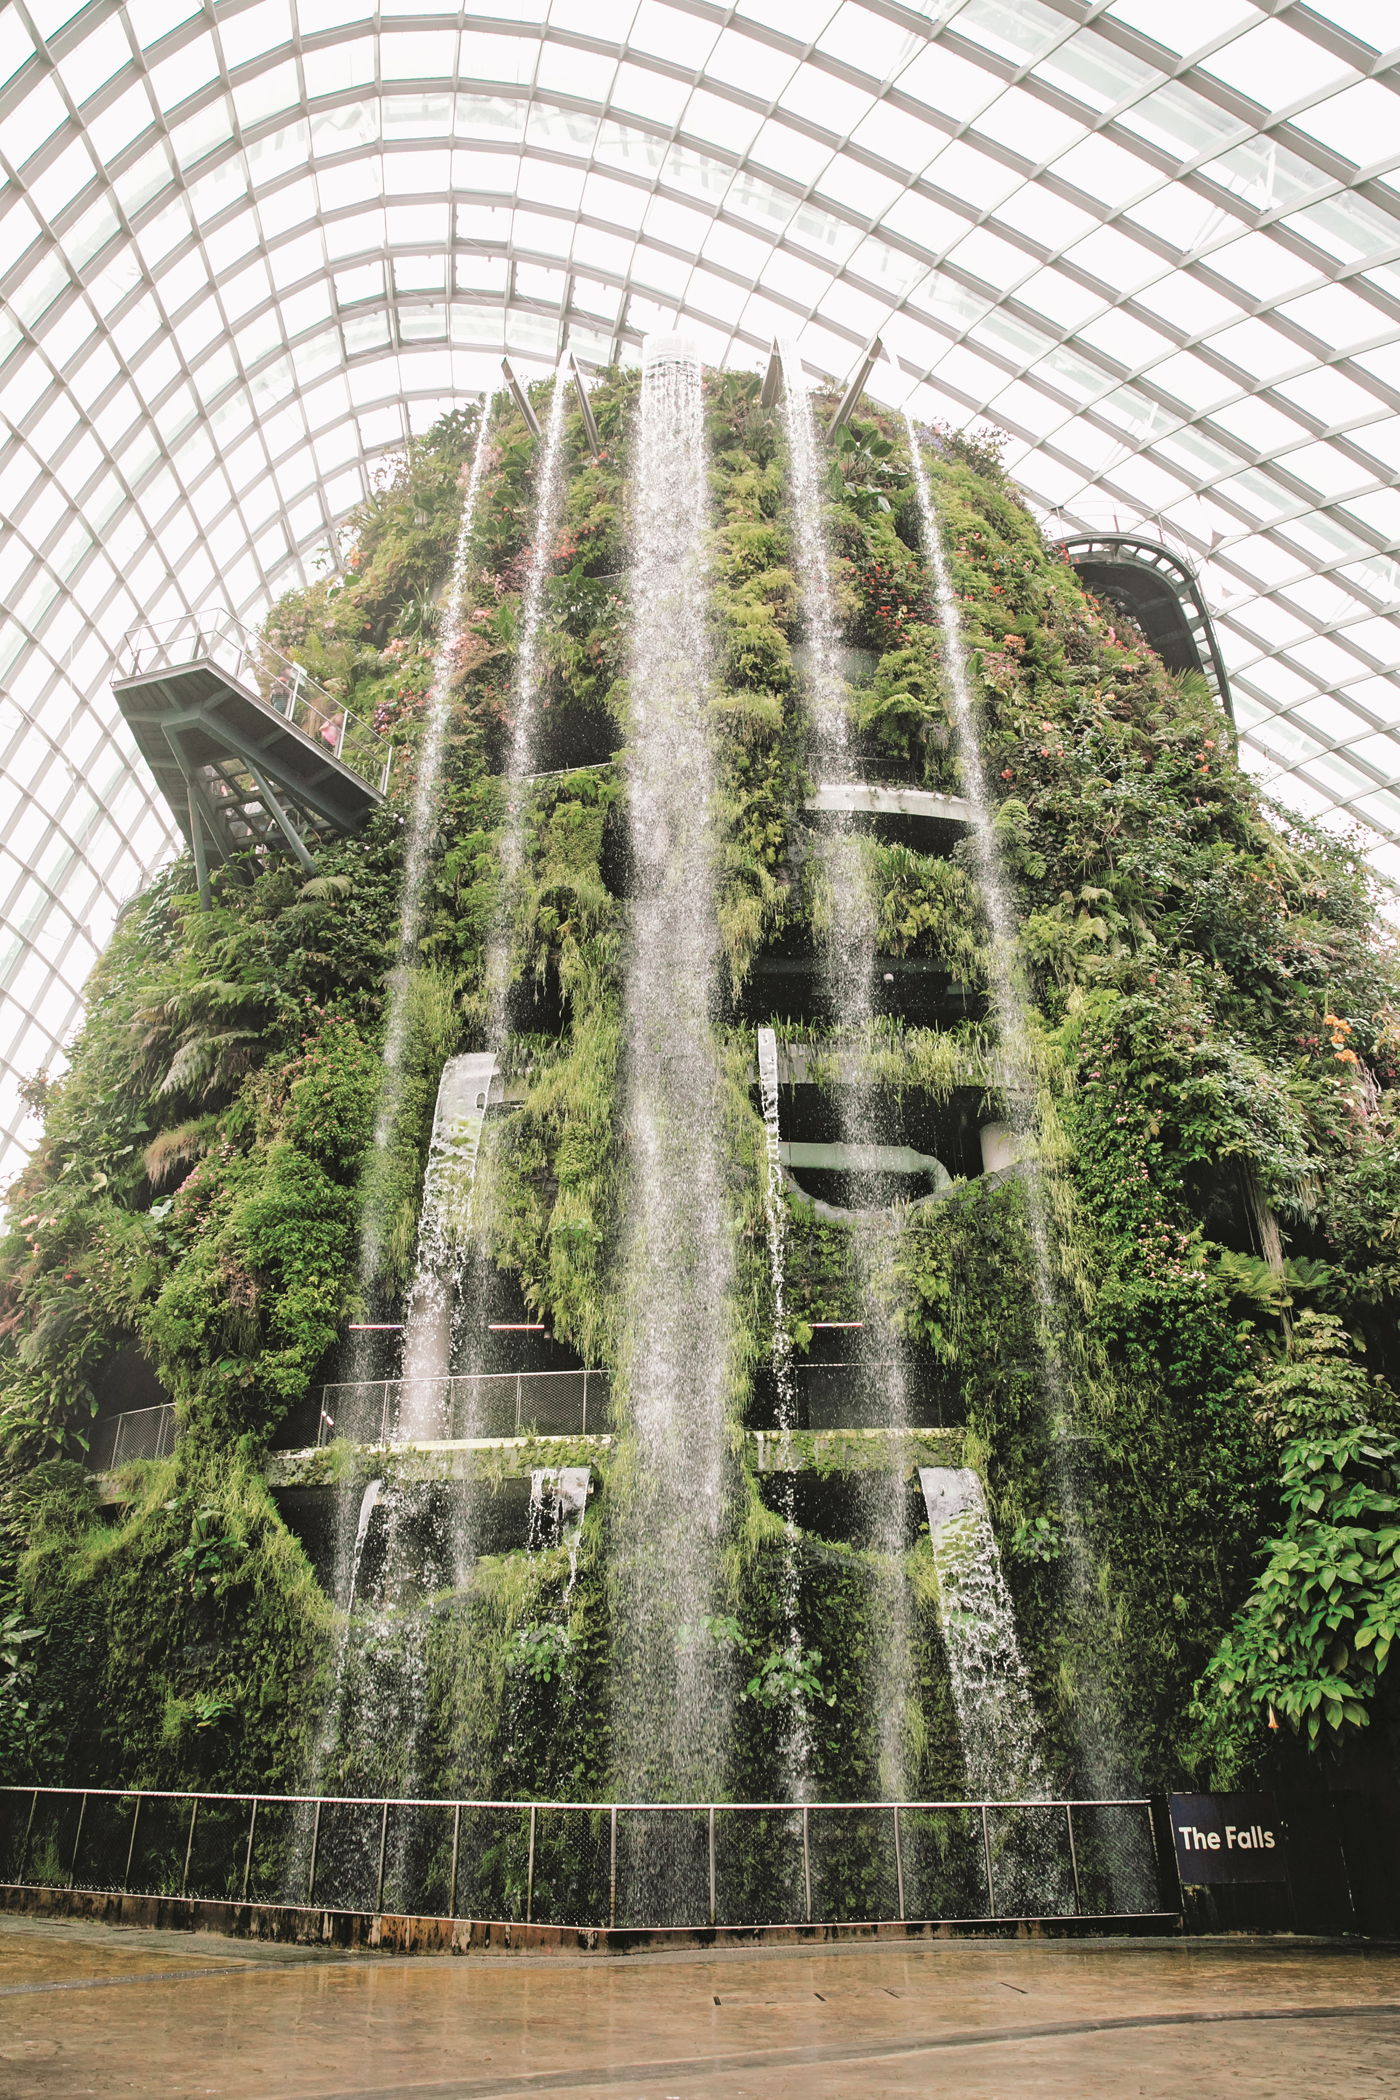 CLOUD FOREST, Gardens by the Bay, Singapore. Photography copyright © India Hobson and Magnus Edmondson 2018.